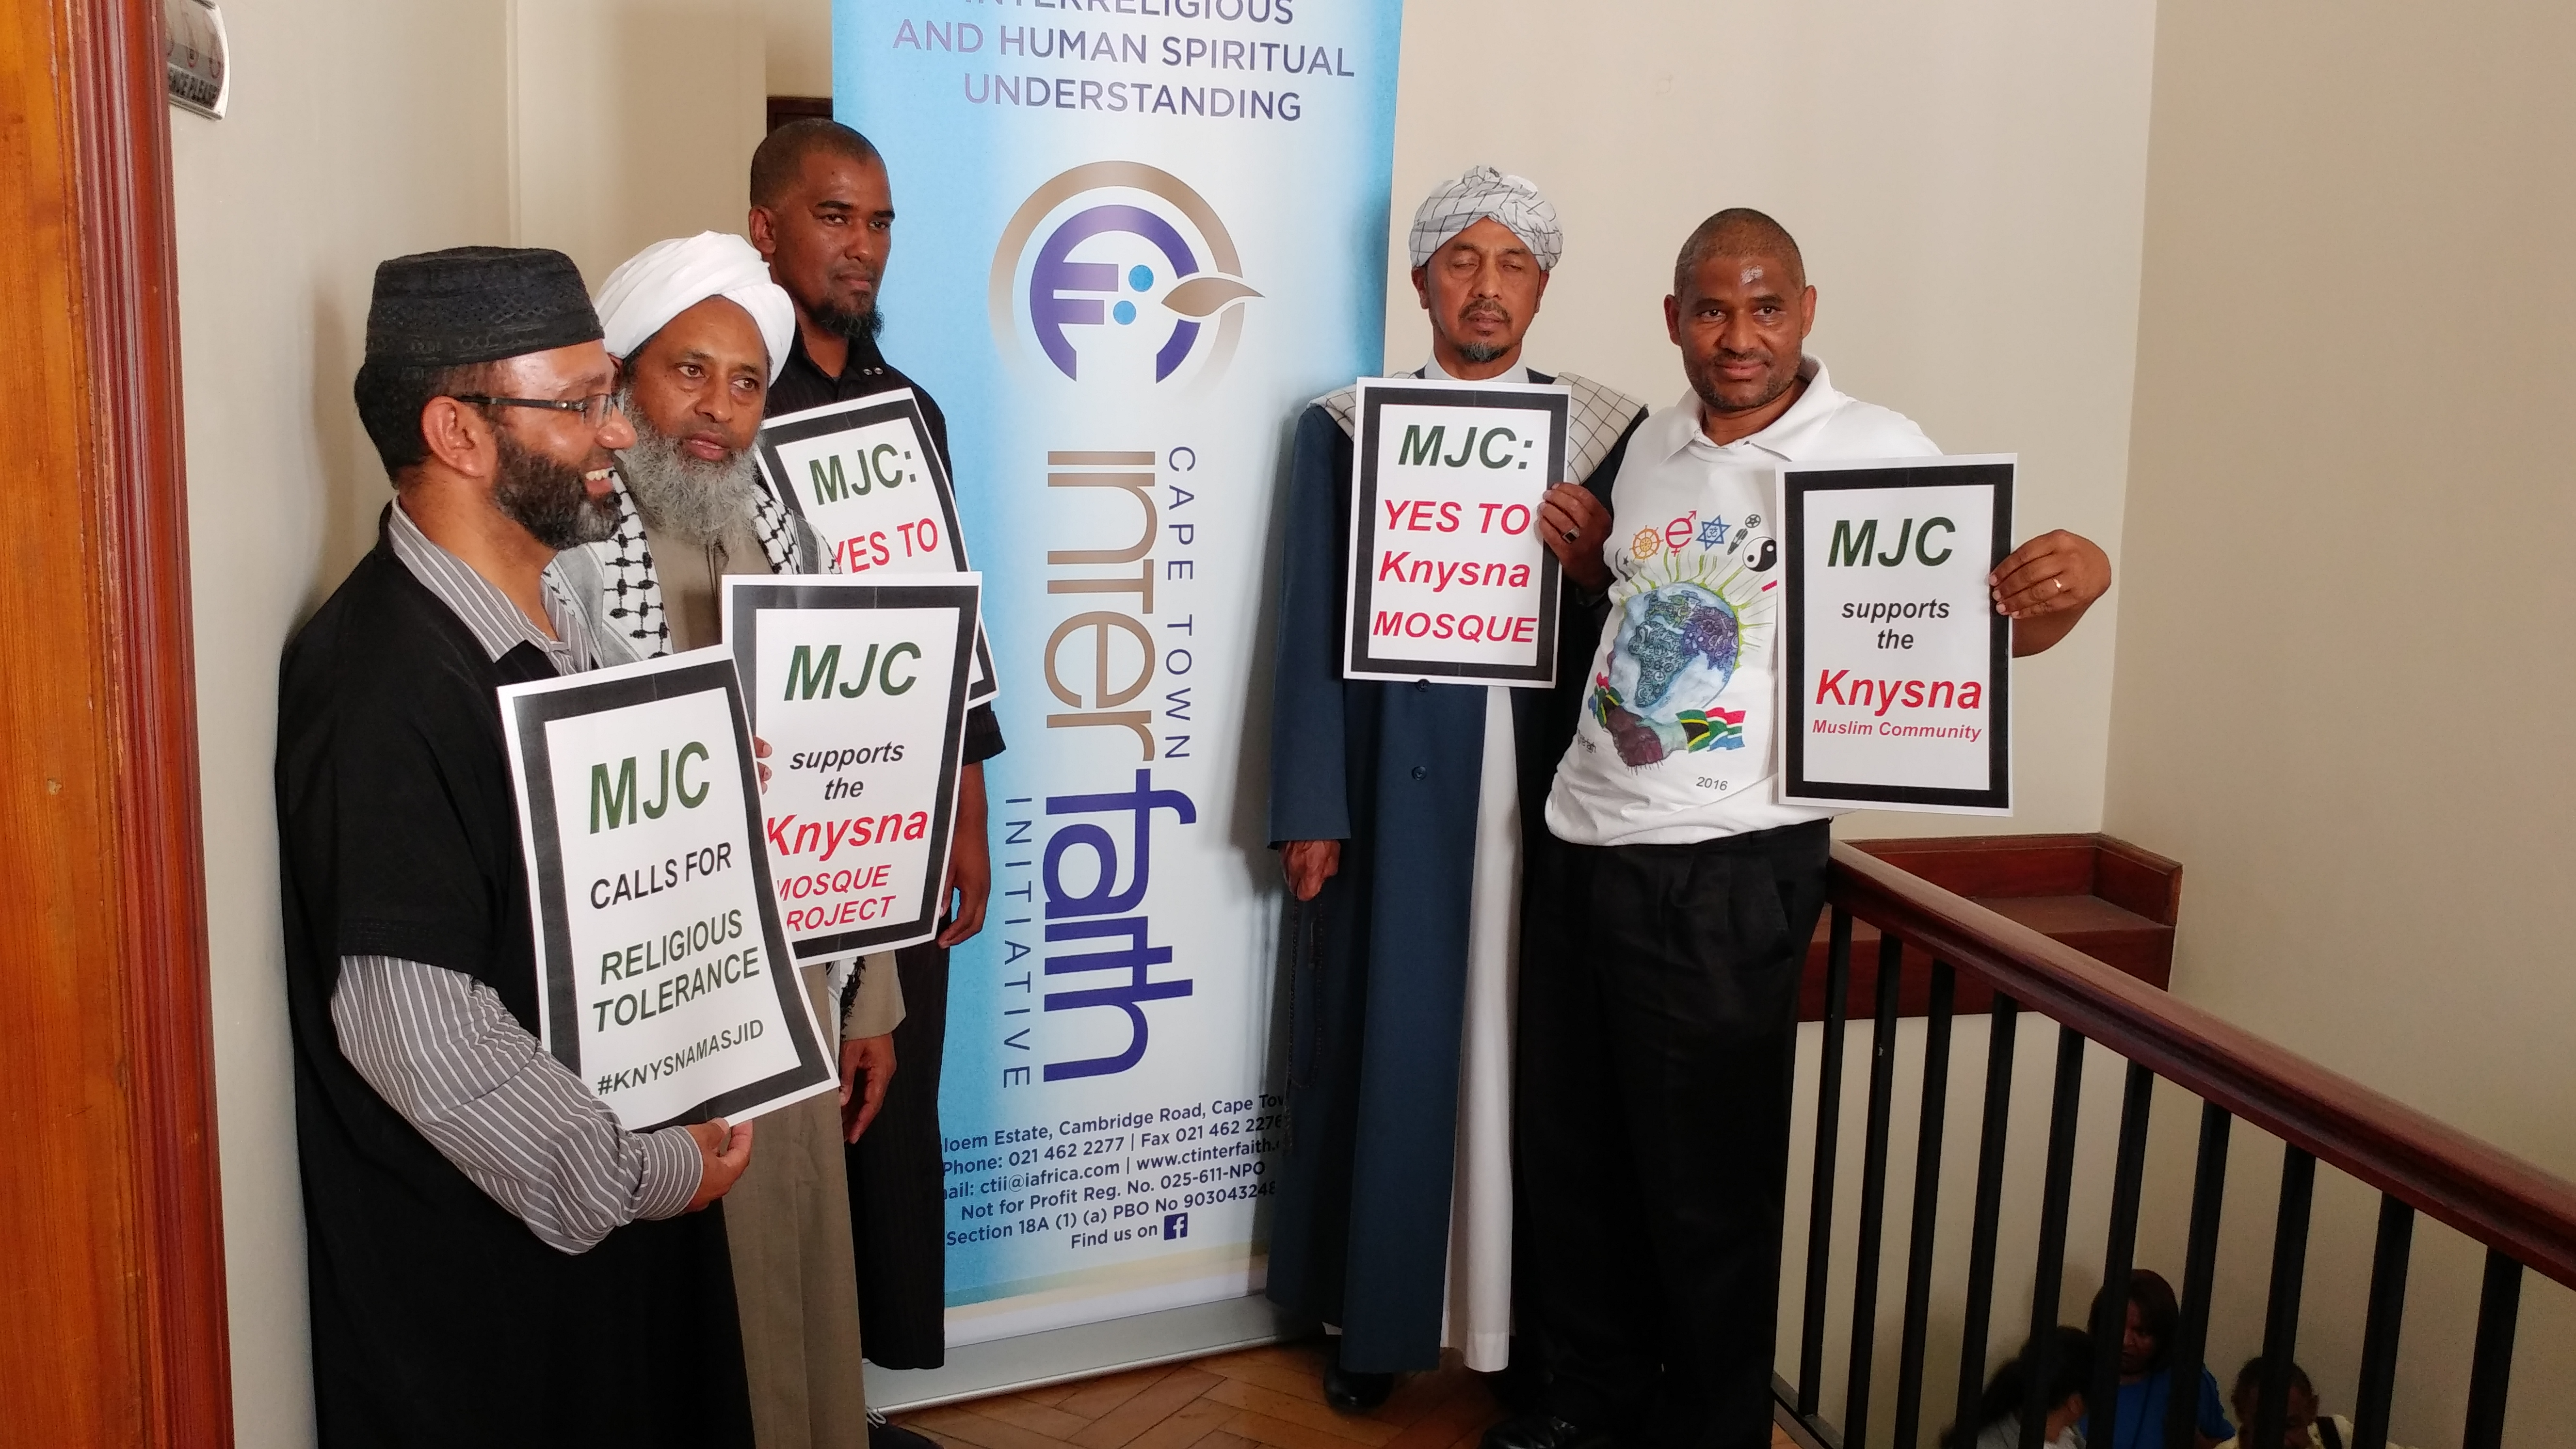 mjc shows support for knysna masjid project - 20170308 113252 - MJC shows support for Knysna Masjid Project